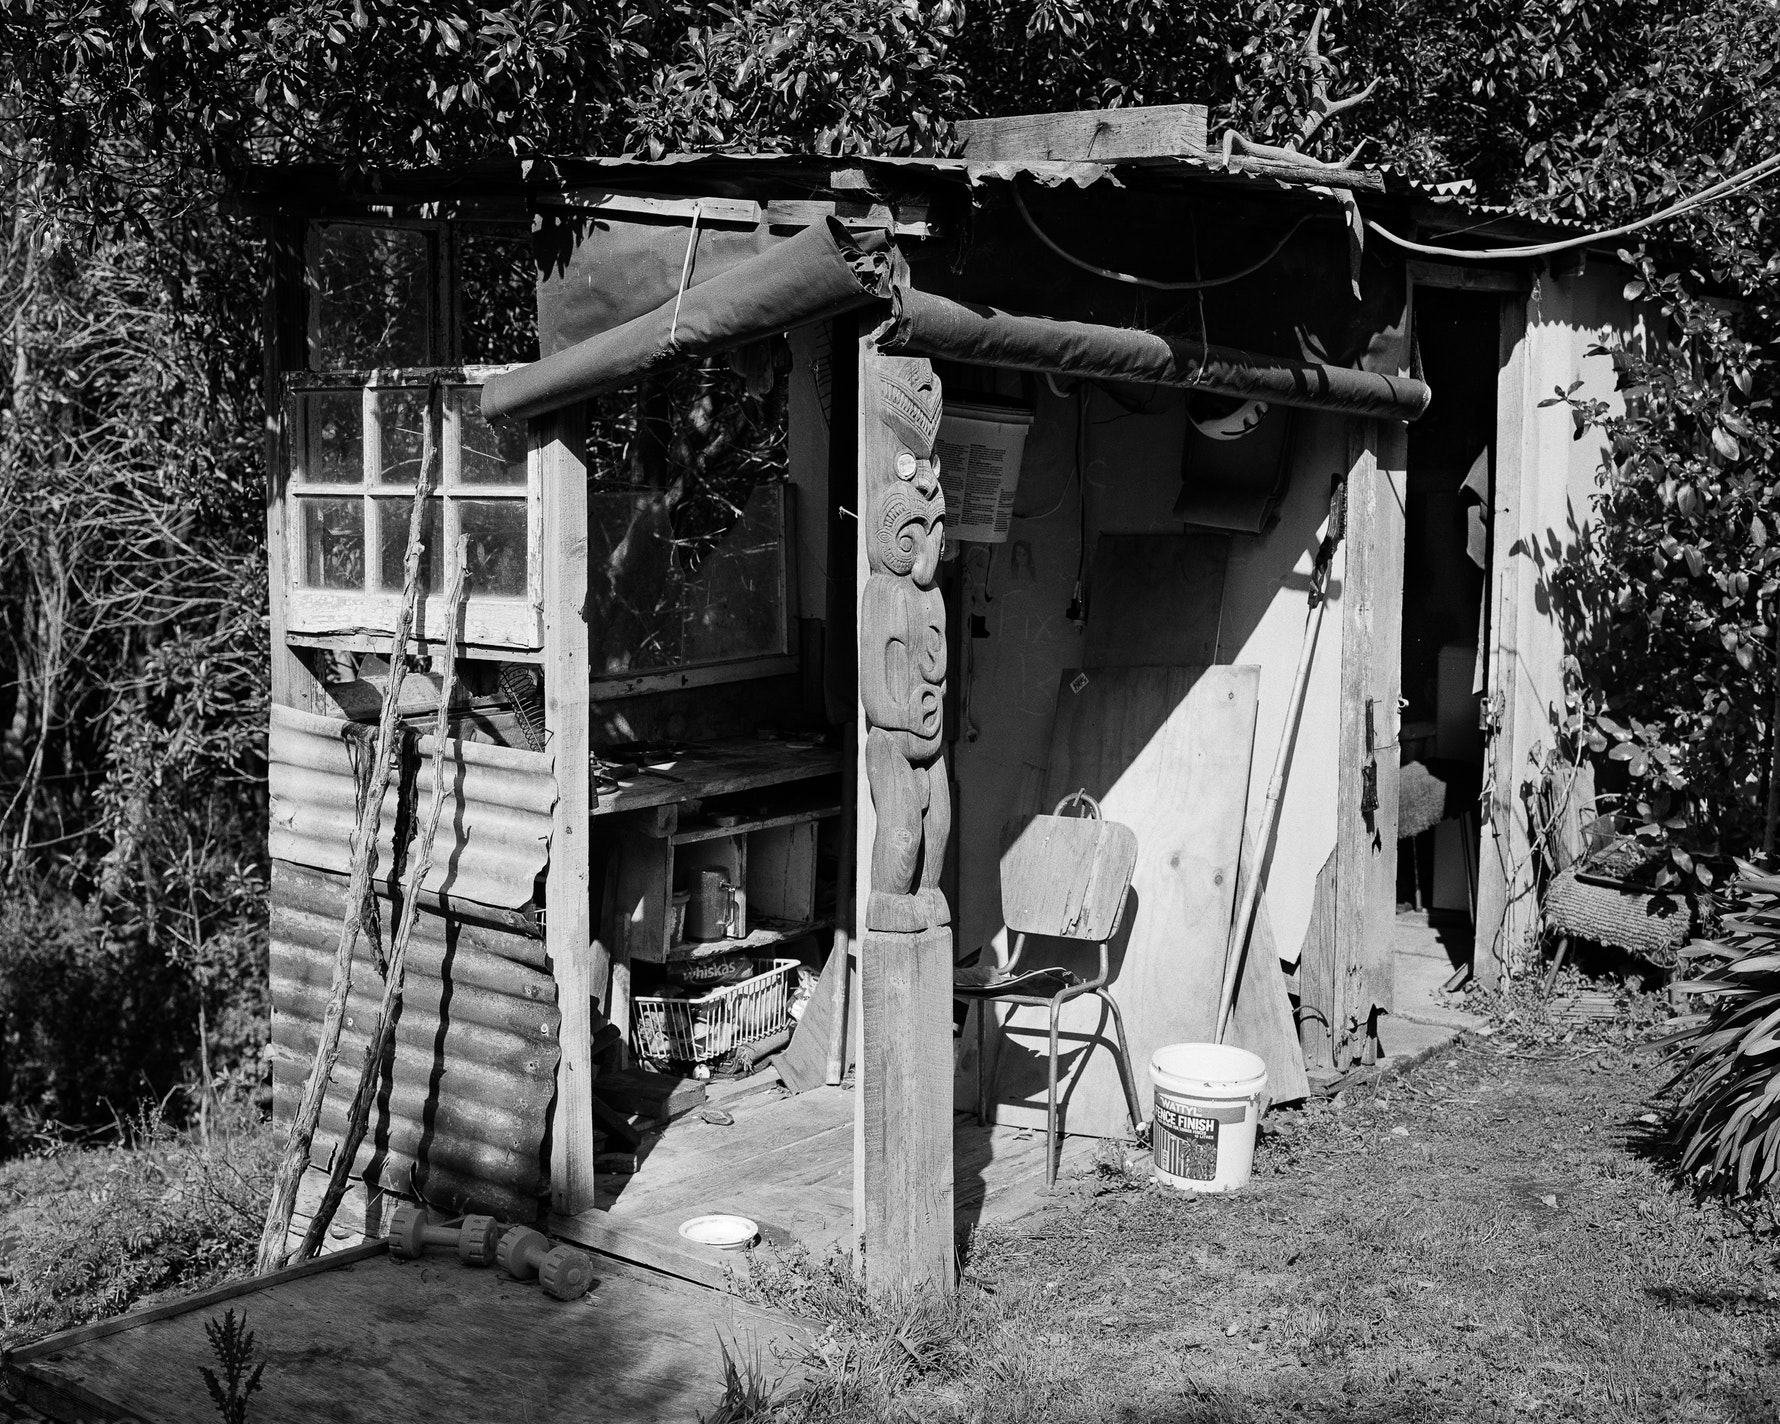 Carving hut in Rewi Couch's garden.